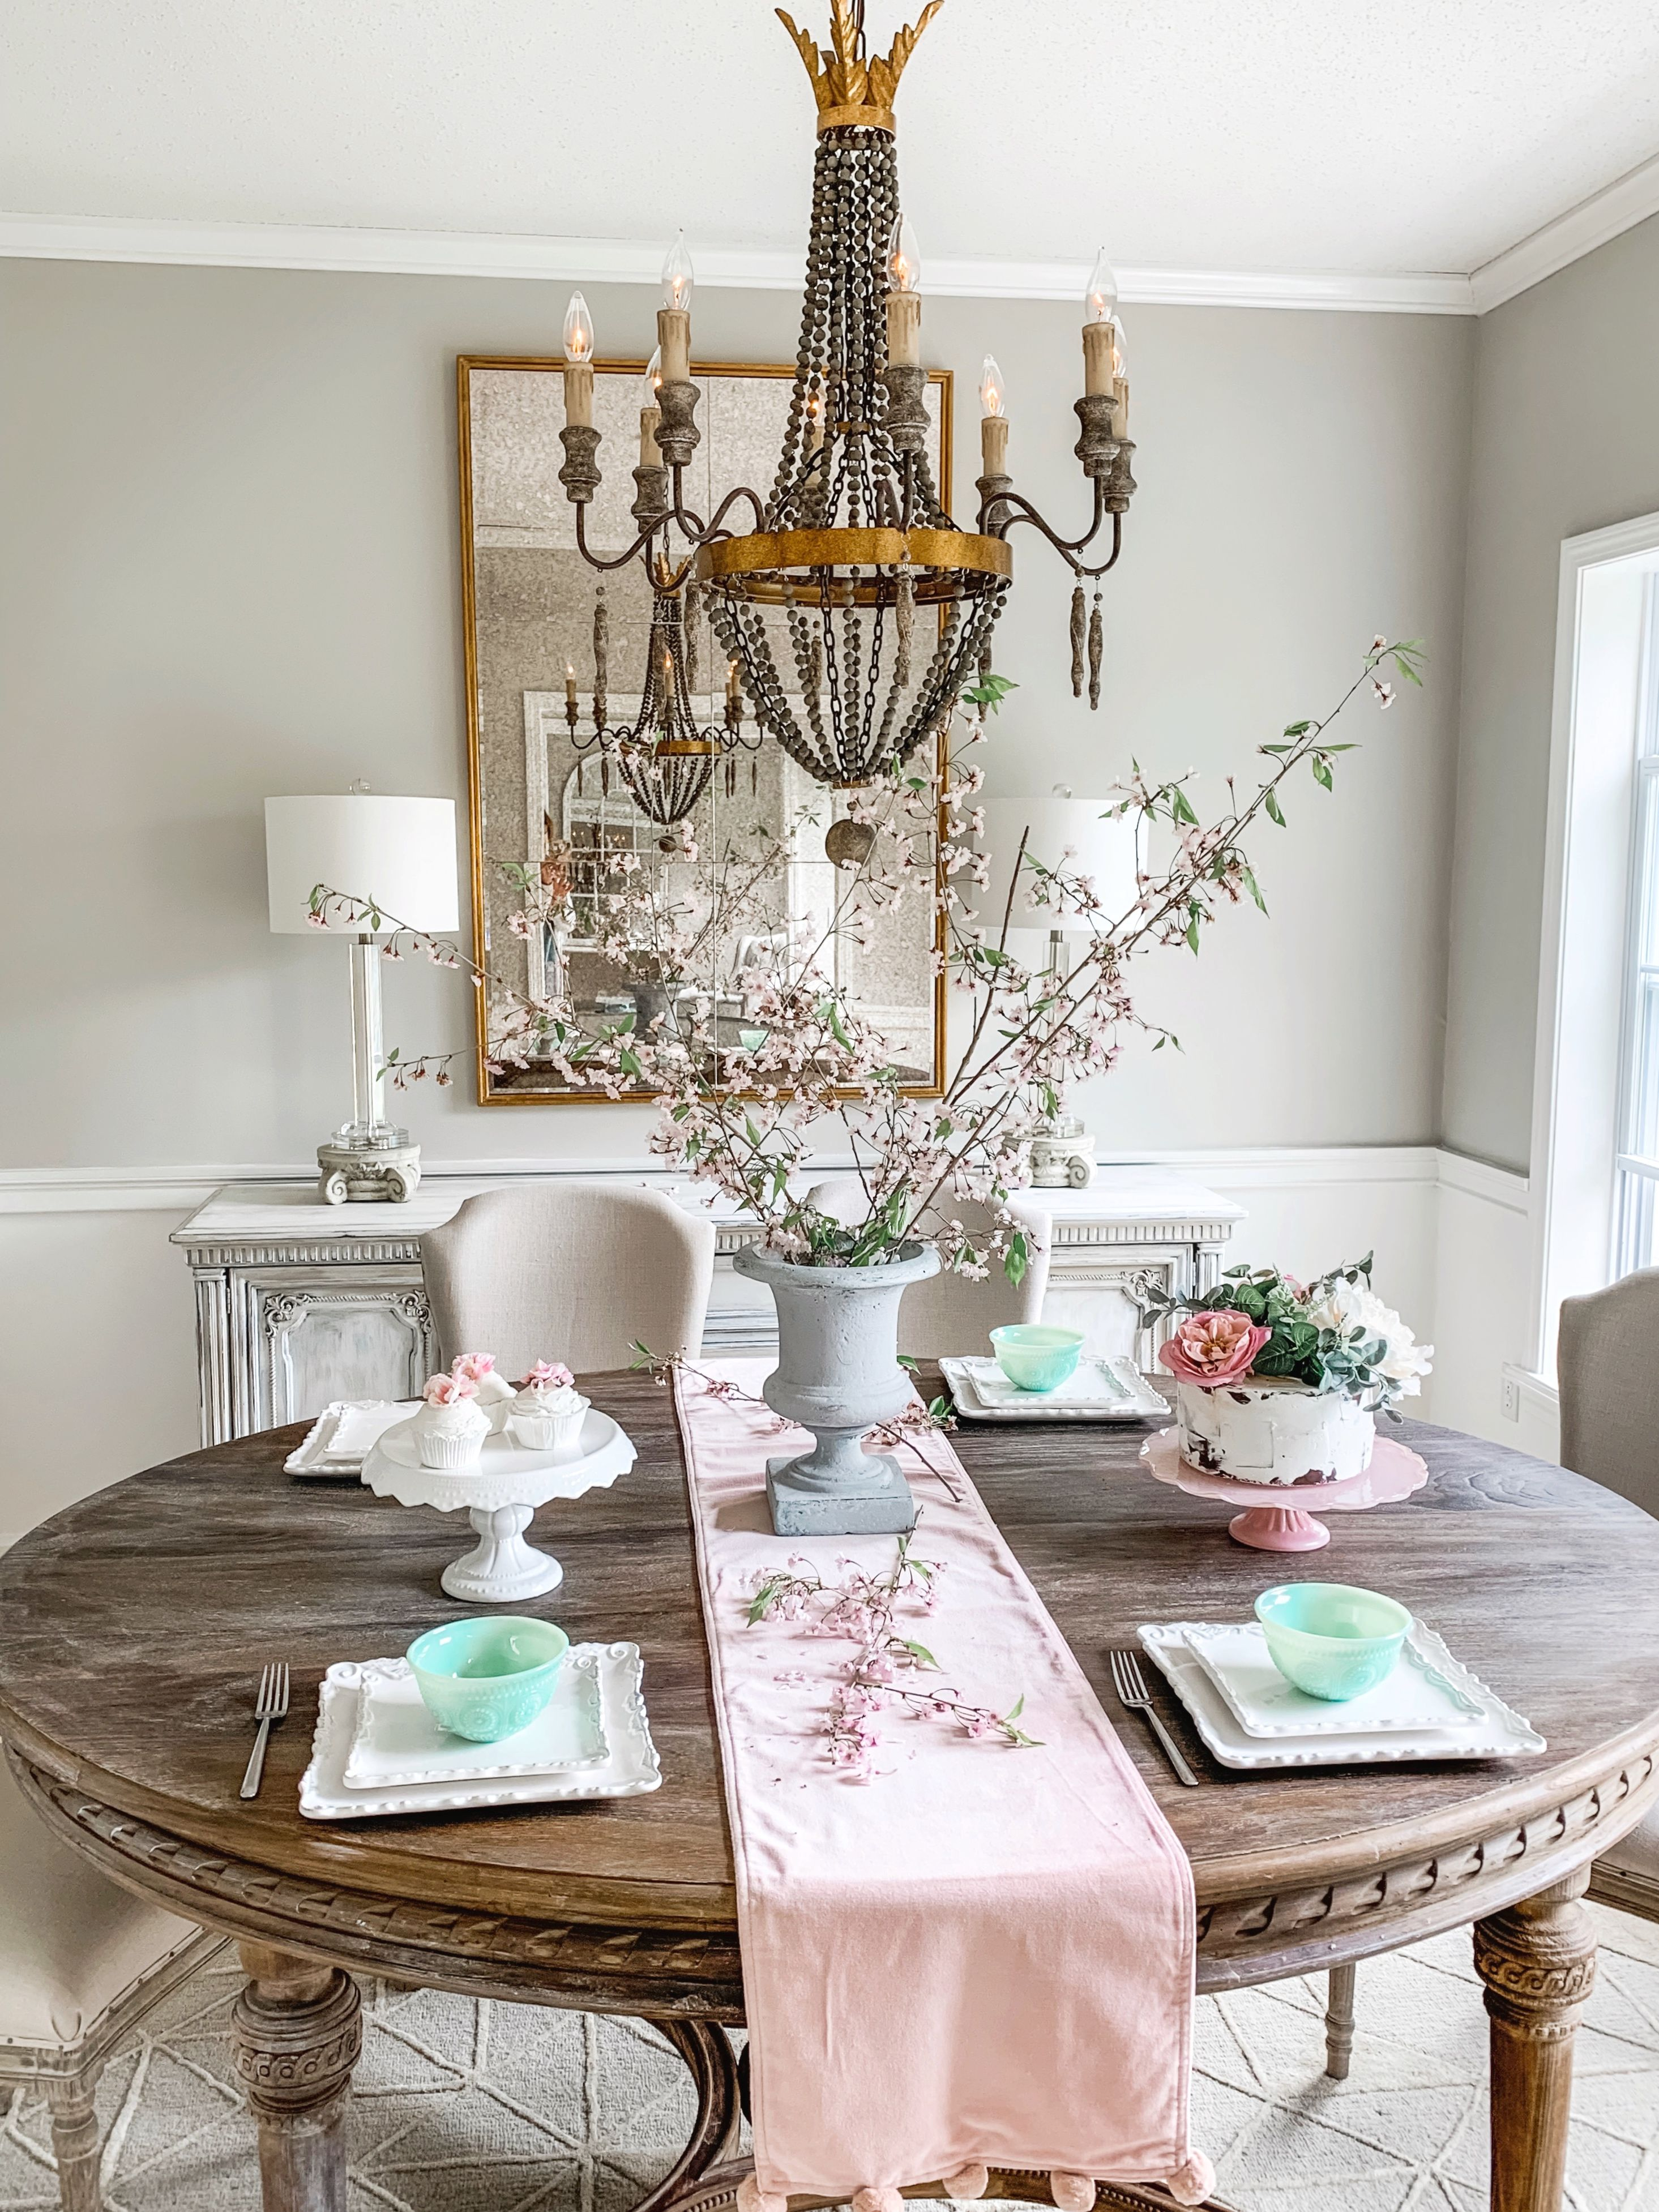 French Country Farmhouse Shabby Chic Dining Room